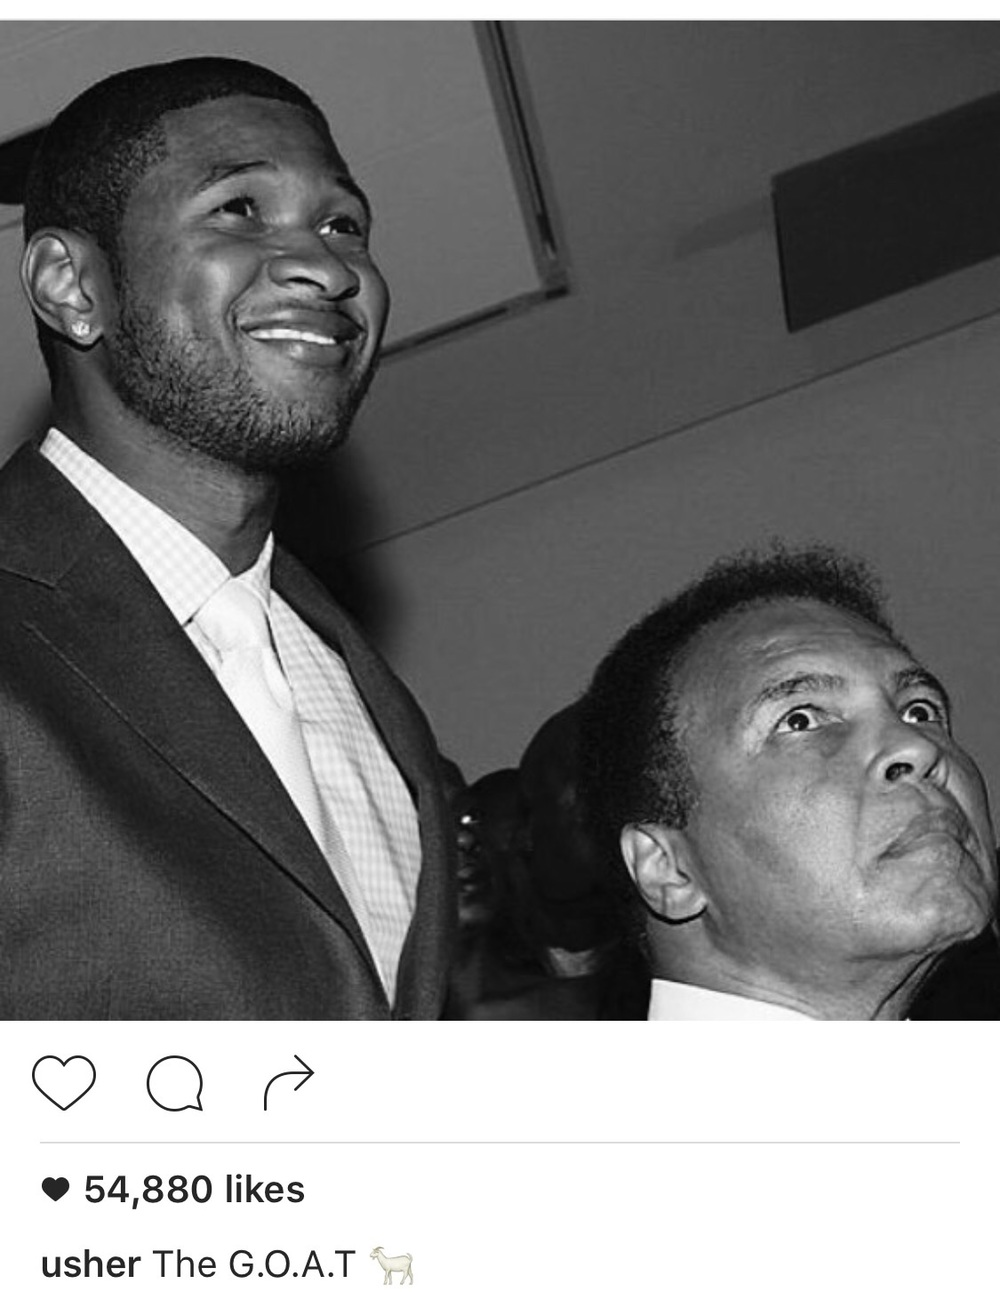 Usher Shared this photo on his Instagram with the Greatest